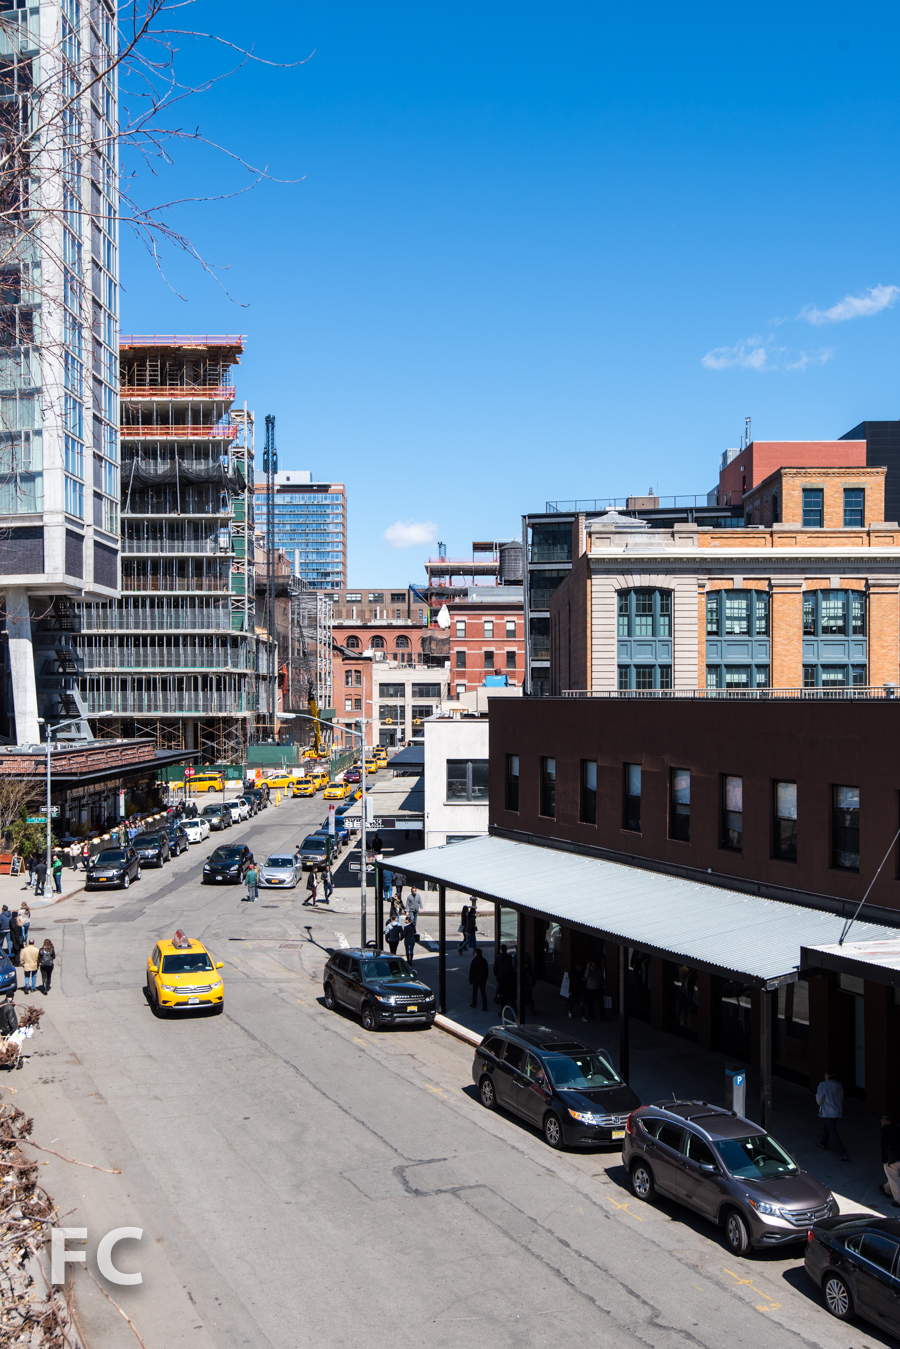 Southeast corner of the Standard Hotel (far left), 860 Washington (left center) and the Caledonia (center) from the High Line park.